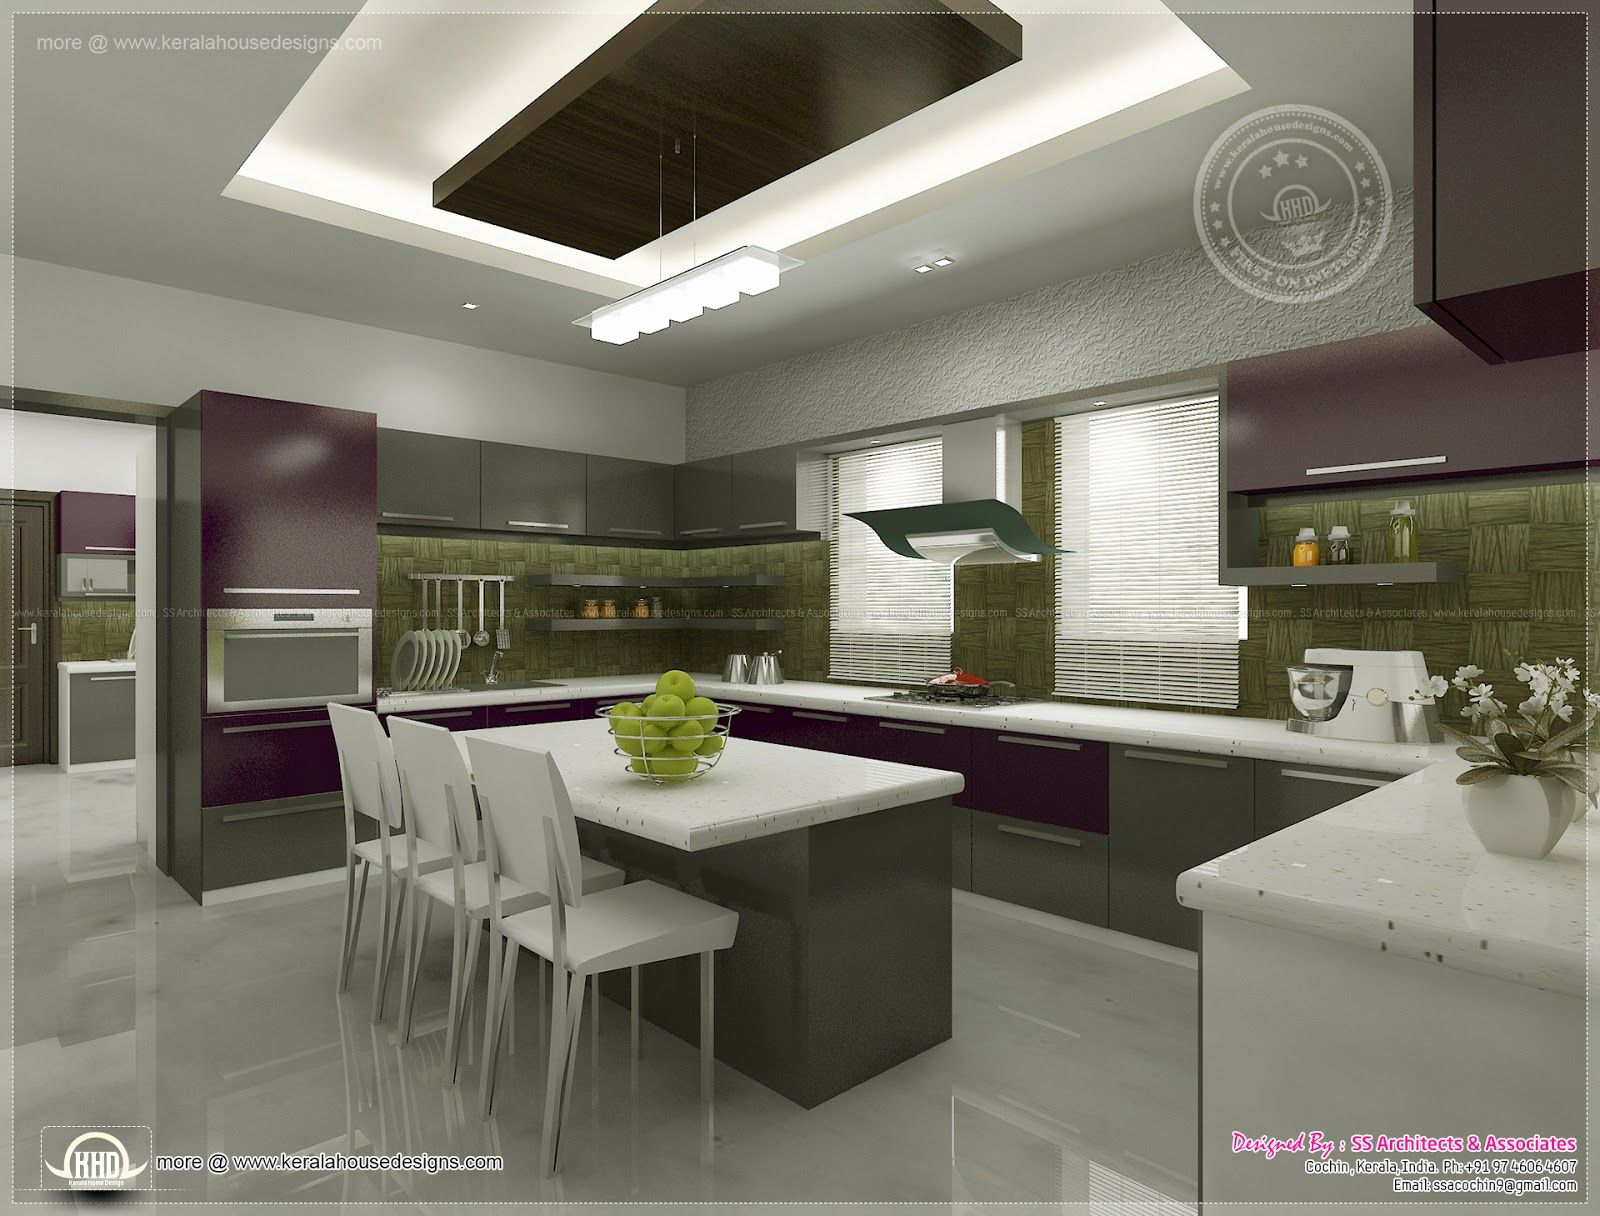 Kitchen Interior Views Ss Architects Cochin Kerala Home Design Kitchen Interior Views Ss